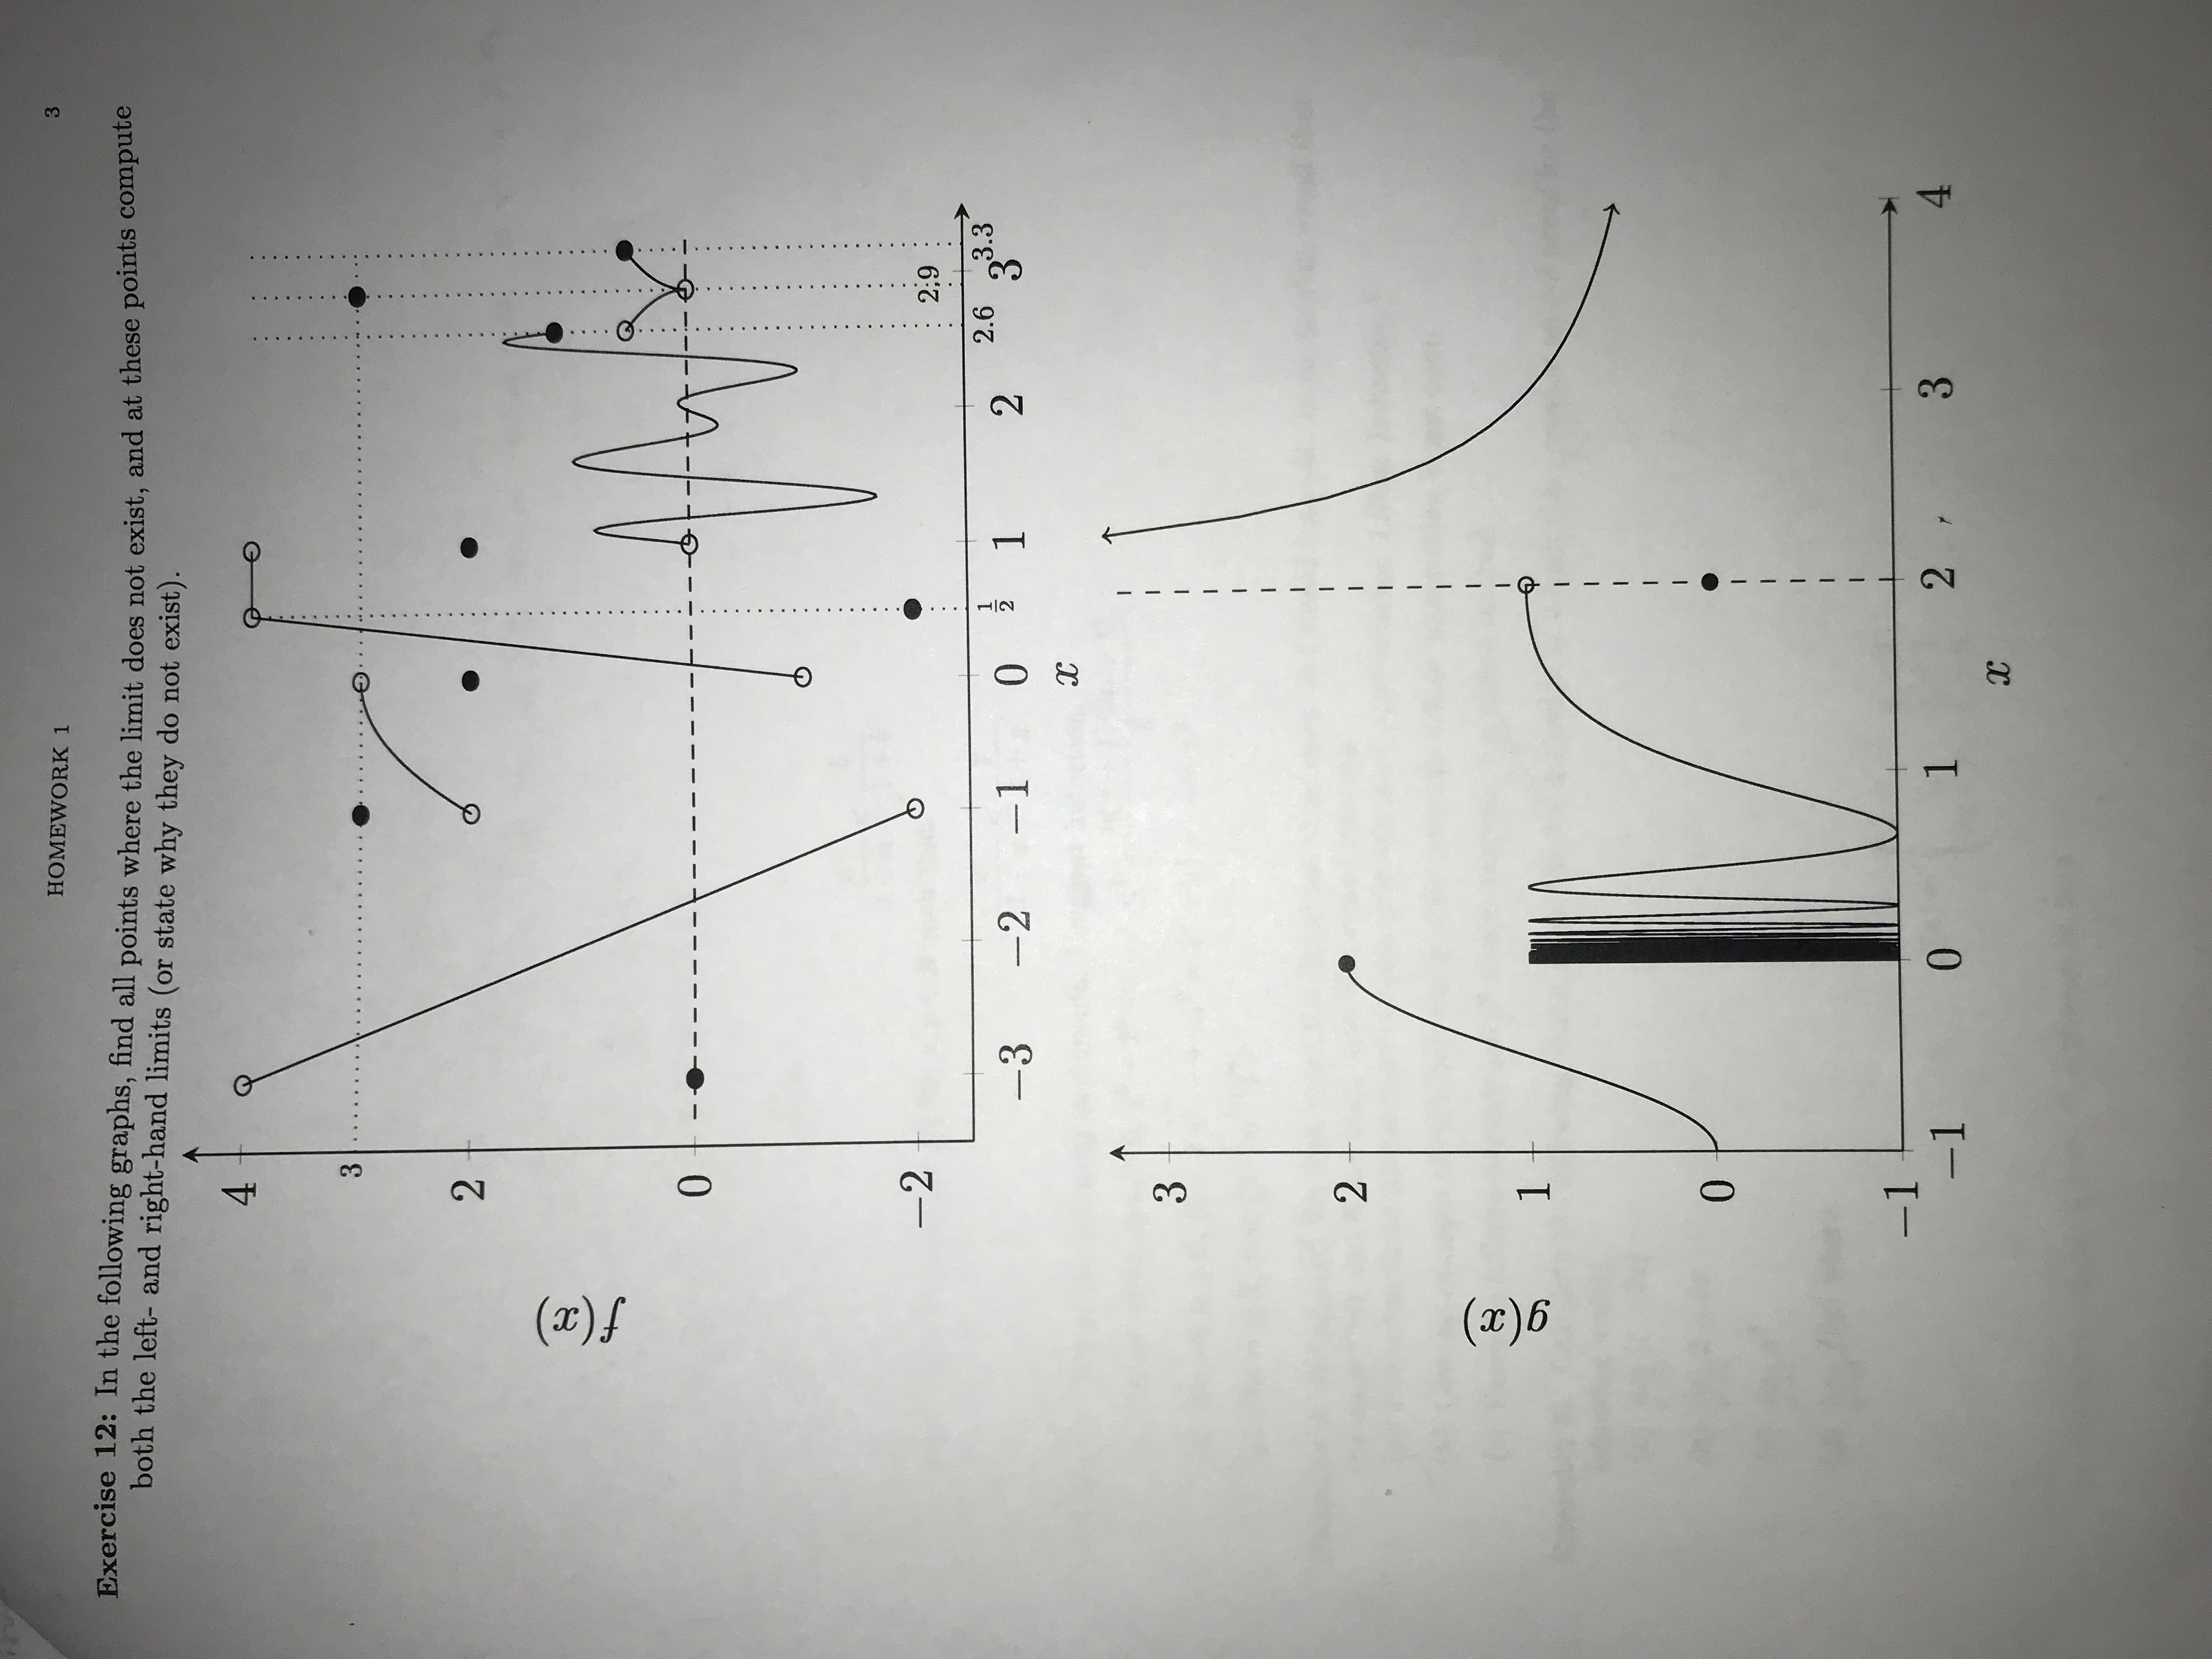 C3 HOMEWORK 1 Exercise 12: In the following graphs, find all points where the limit does not exist, and at these points compute both the left- and right-hand limits (or state why they do not exist). 4 3 2 0 -2 2:9 2.6 2 1 2 33.3 1 0 -1 -3 -2 3 2 1 0 -1 -1 2 , 4 3 0 1 X (r)f (r)6